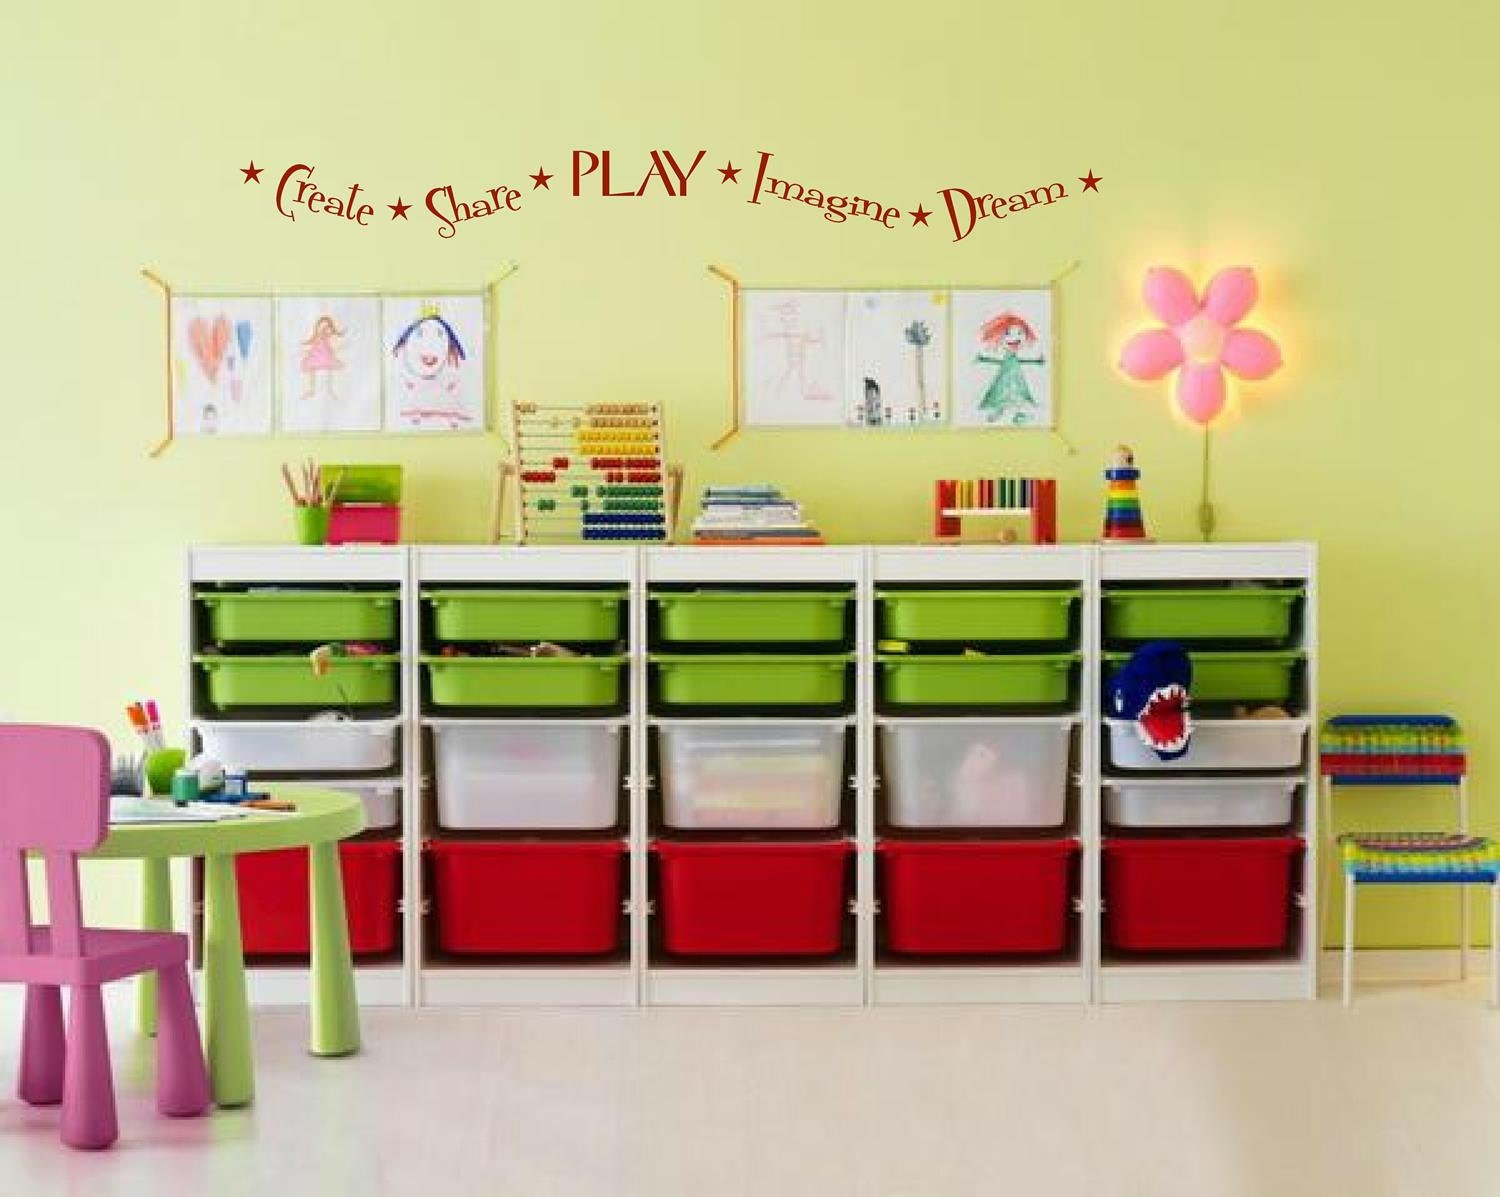 Nursery Playroom Wall Decal Kids wall decals Create Share